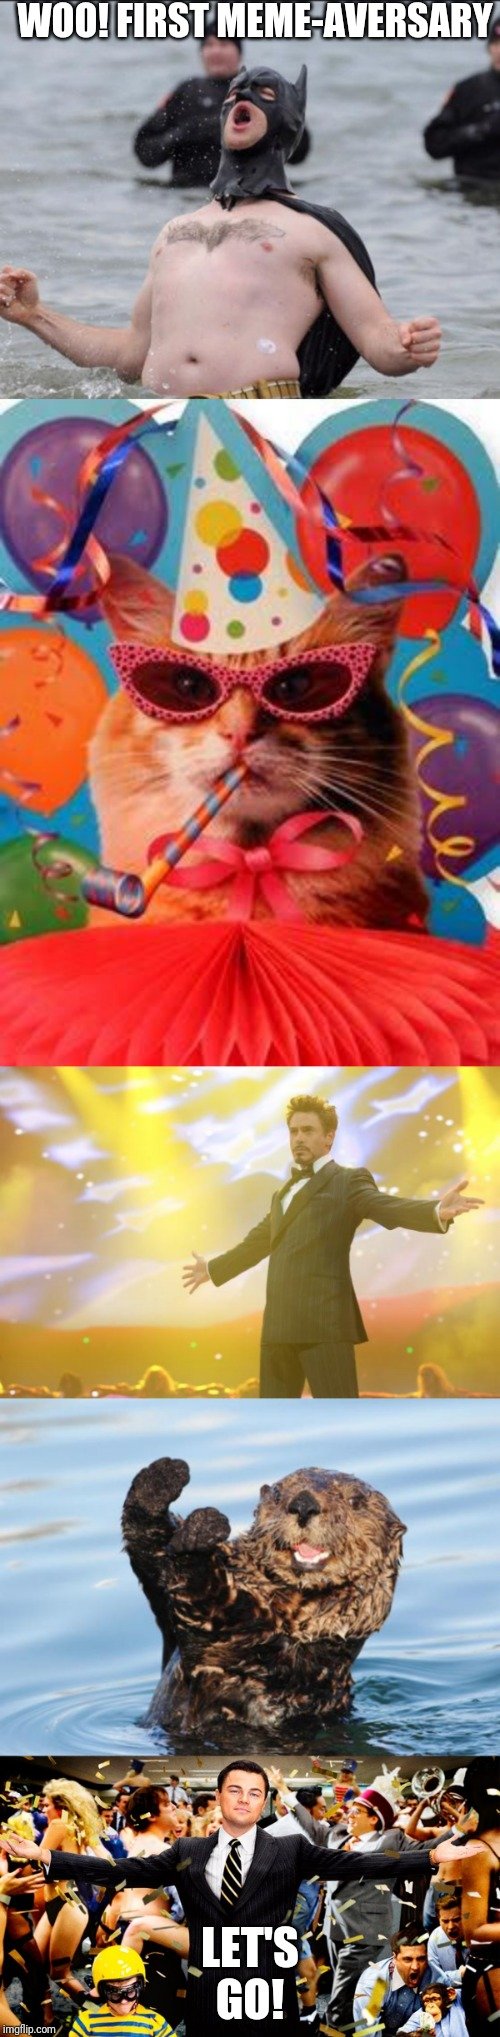 WOO! FIRST MEME-AVERSARY; LET'S GO! | image tagged in tony stark success,cat celebration,otter celebration,wolf party,batman celebrates | made w/ Imgflip meme maker